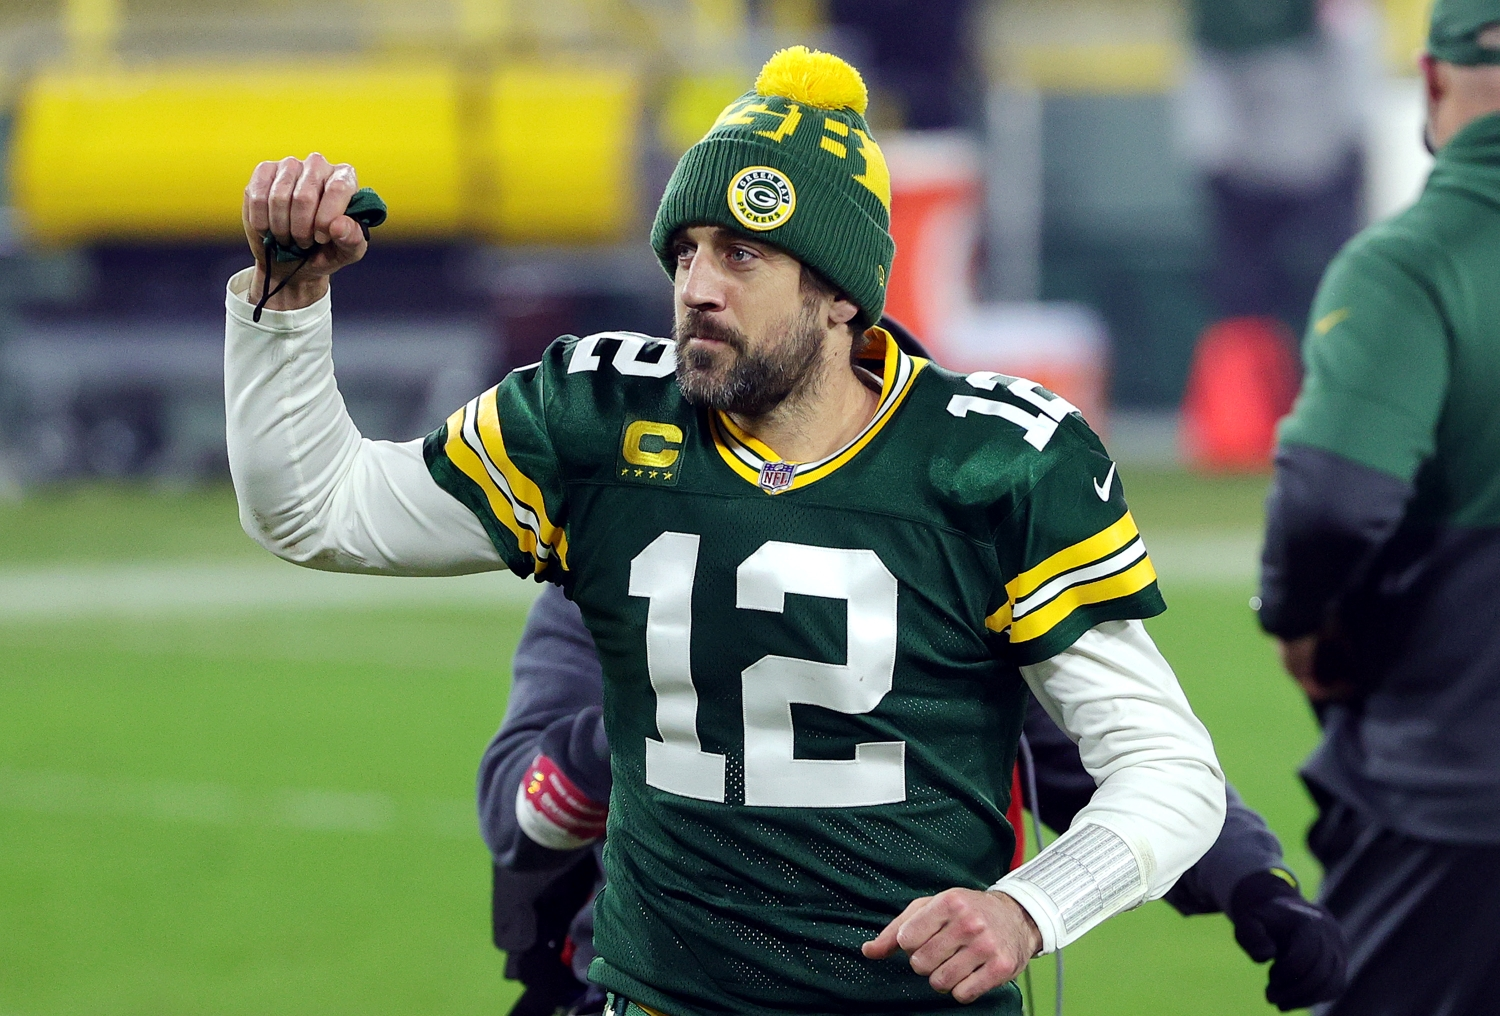 Aaron Rodgers Has Already Crunched the Numbers to Confirm His 'Dream Job' Won't Interfere With His Packers Career